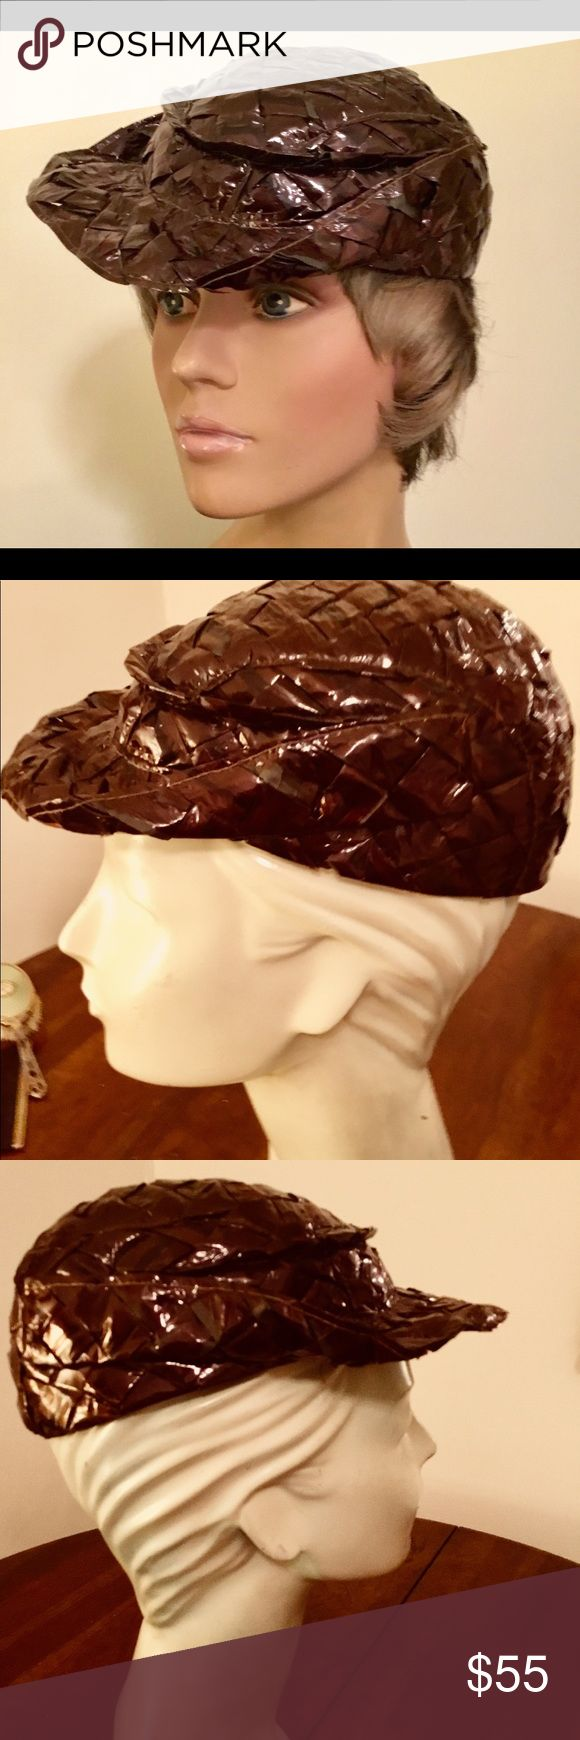 40's Cellophane woven Cap Visor Tilt Hat This is a stylish cap visor tilt hat in chocolate brown from the forties most likely made for casual dress in the day.  It fits neatly on top of the head but it could need reinforcement from a hat pin depending on your hair style. The style of the hat is in keeping with those today!  It is well made and lined in taffeta. Accessories Hats